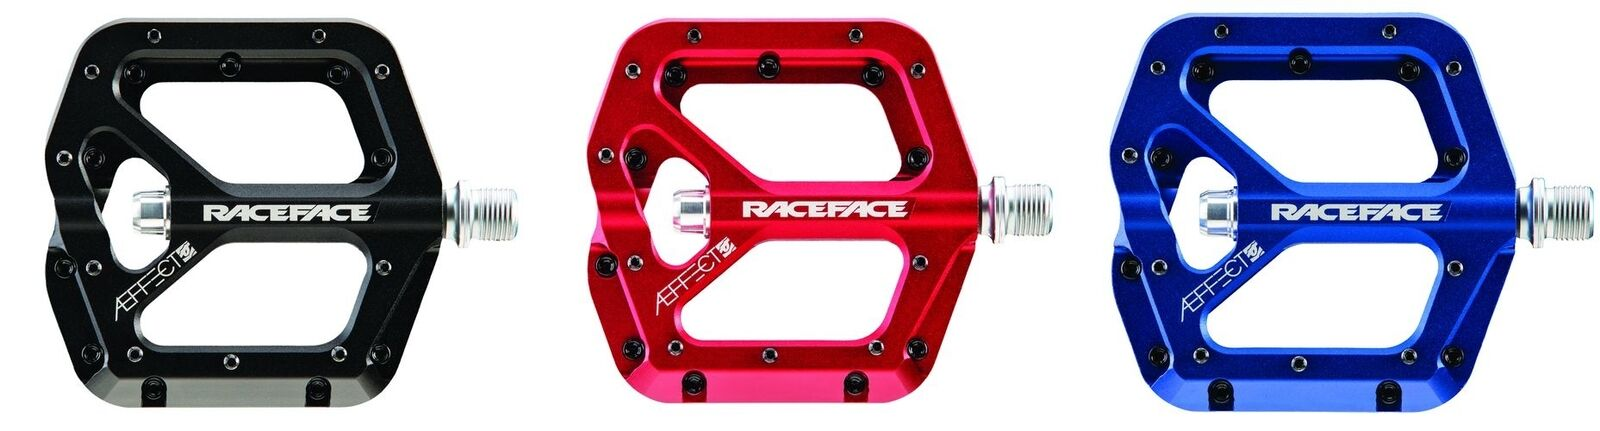 Race Face aeffect pedales Trail, fr, el, dh todos los Colors   Go cycle Shop